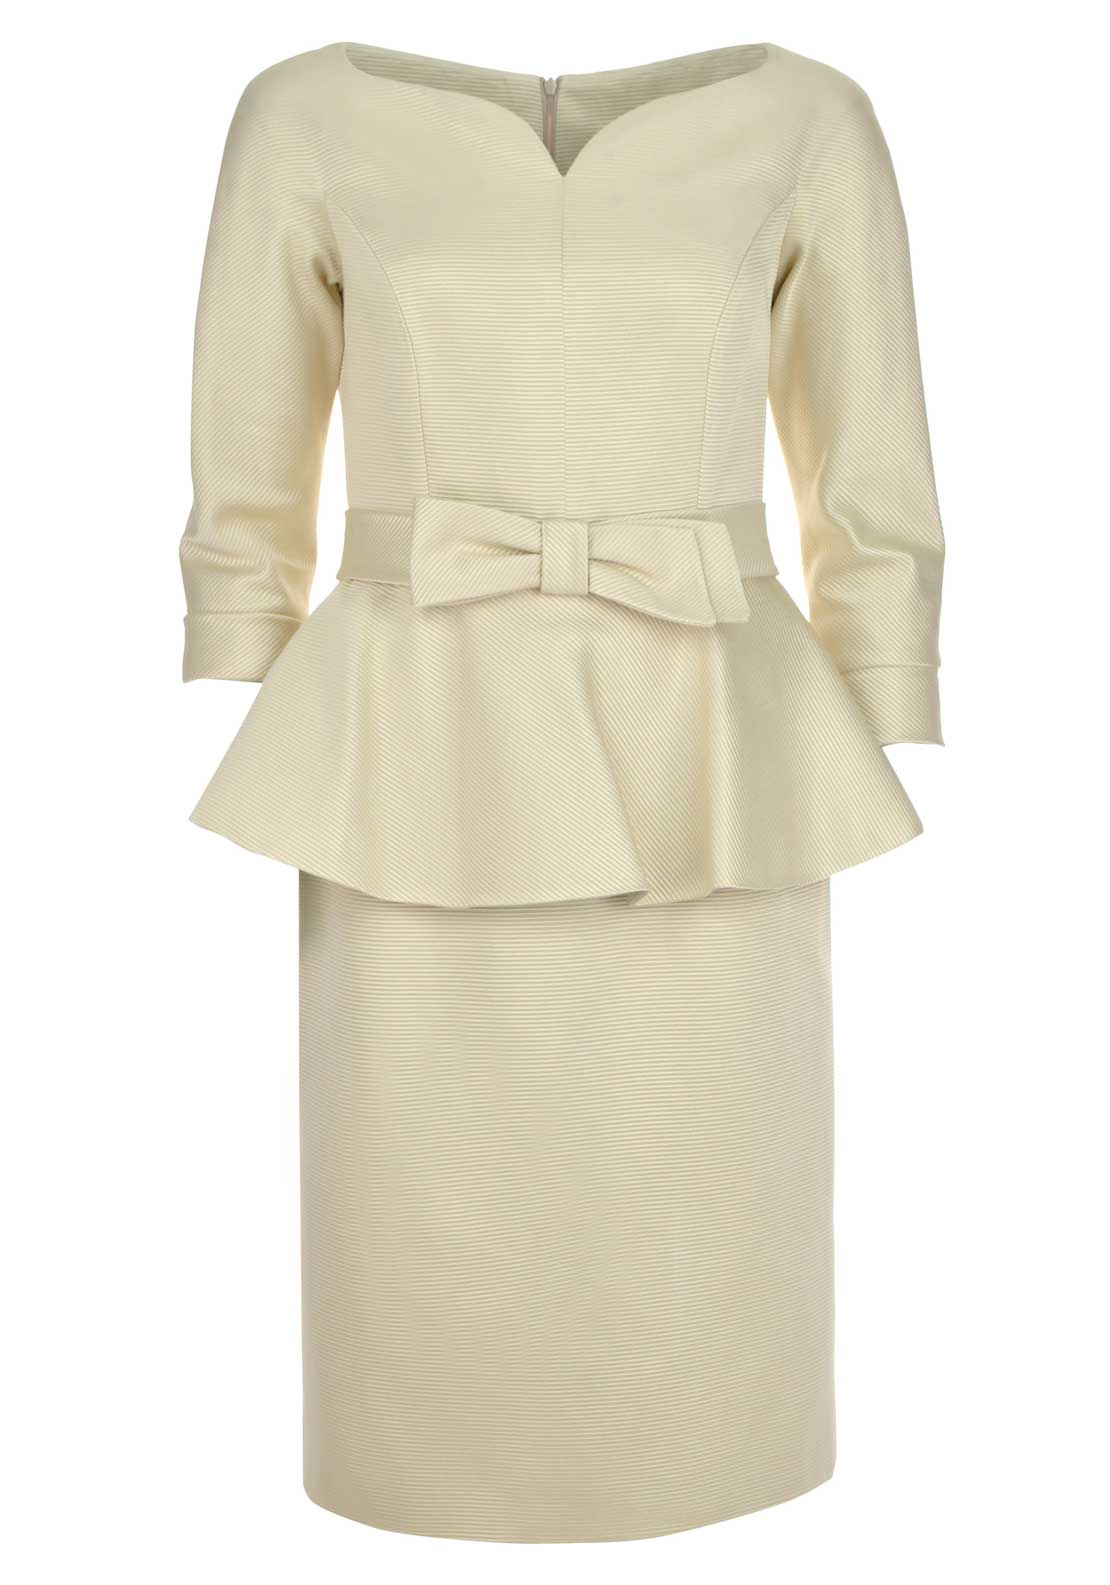 Teresa Ripoll Peplum Dress, Cream